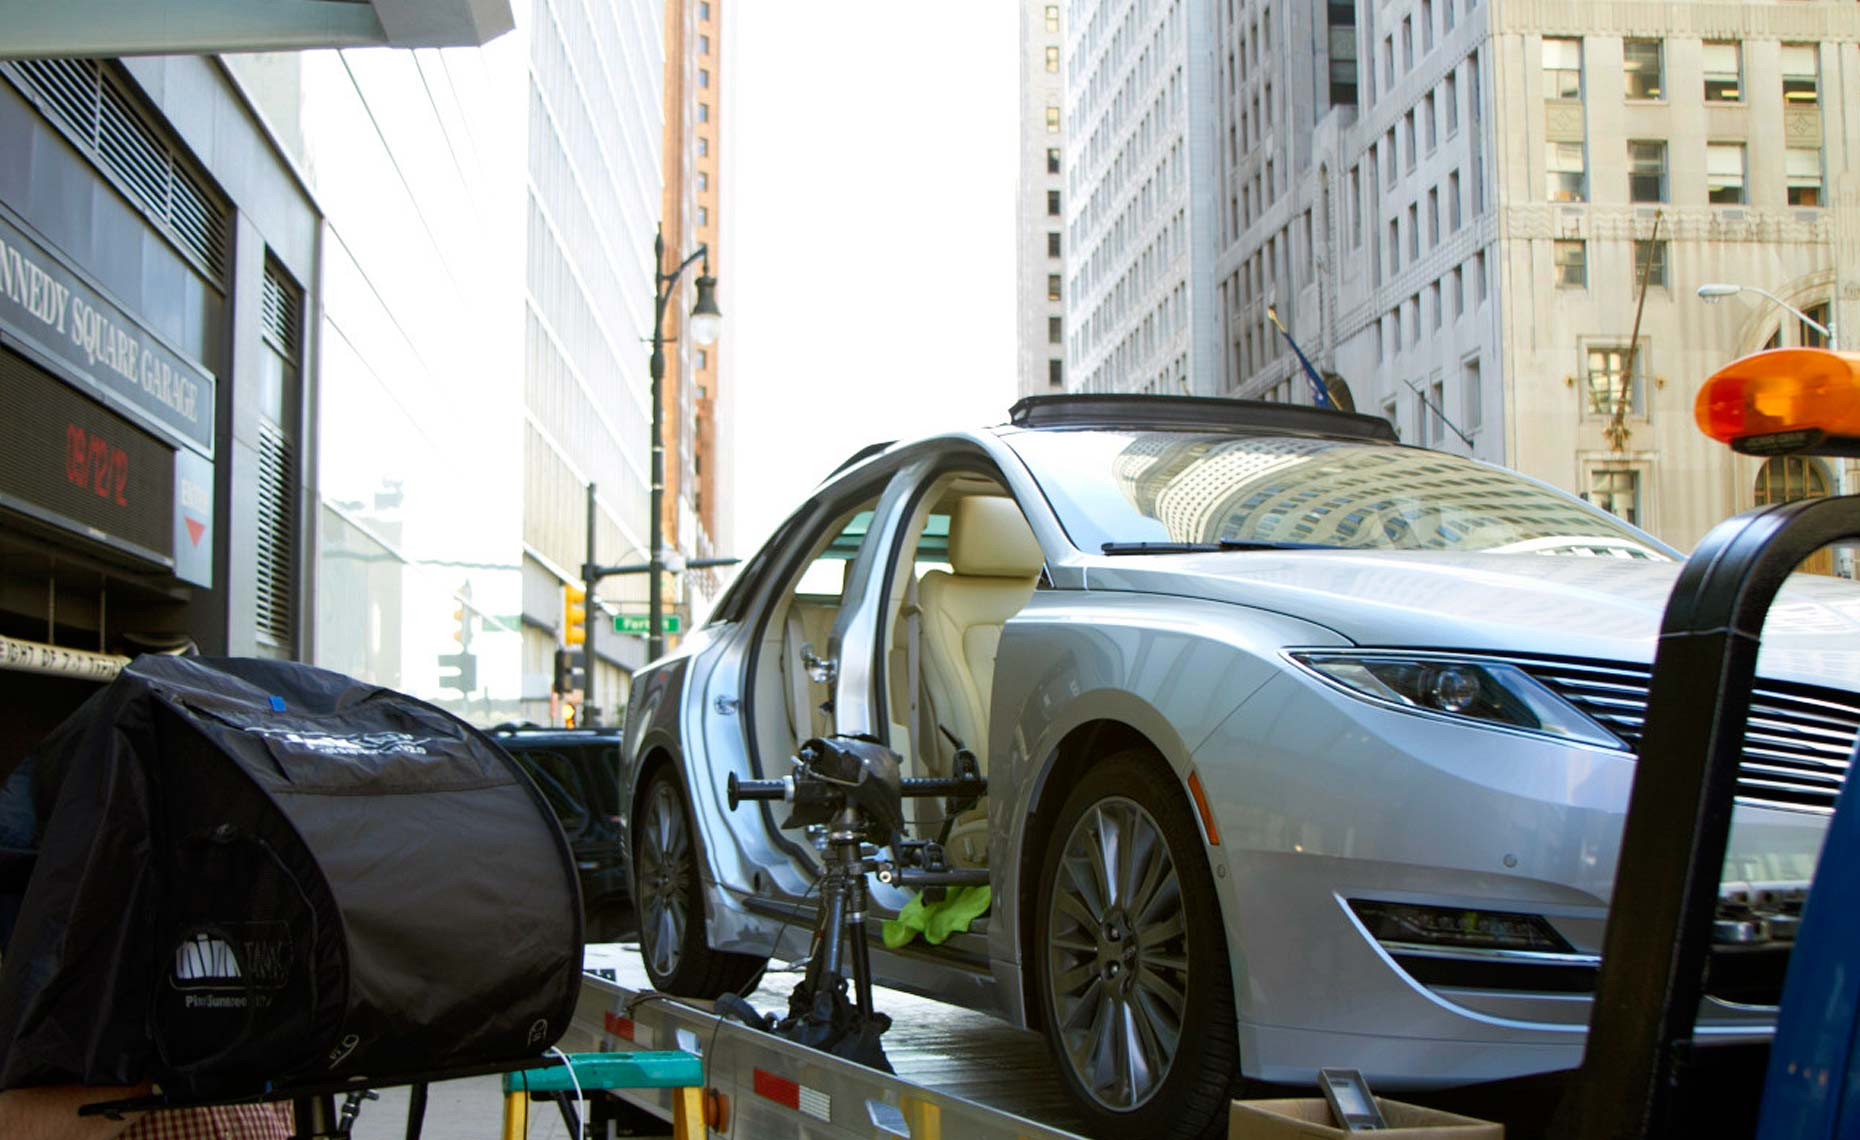 2013 lincoln mkz-behind the scenes-location-4.jpg